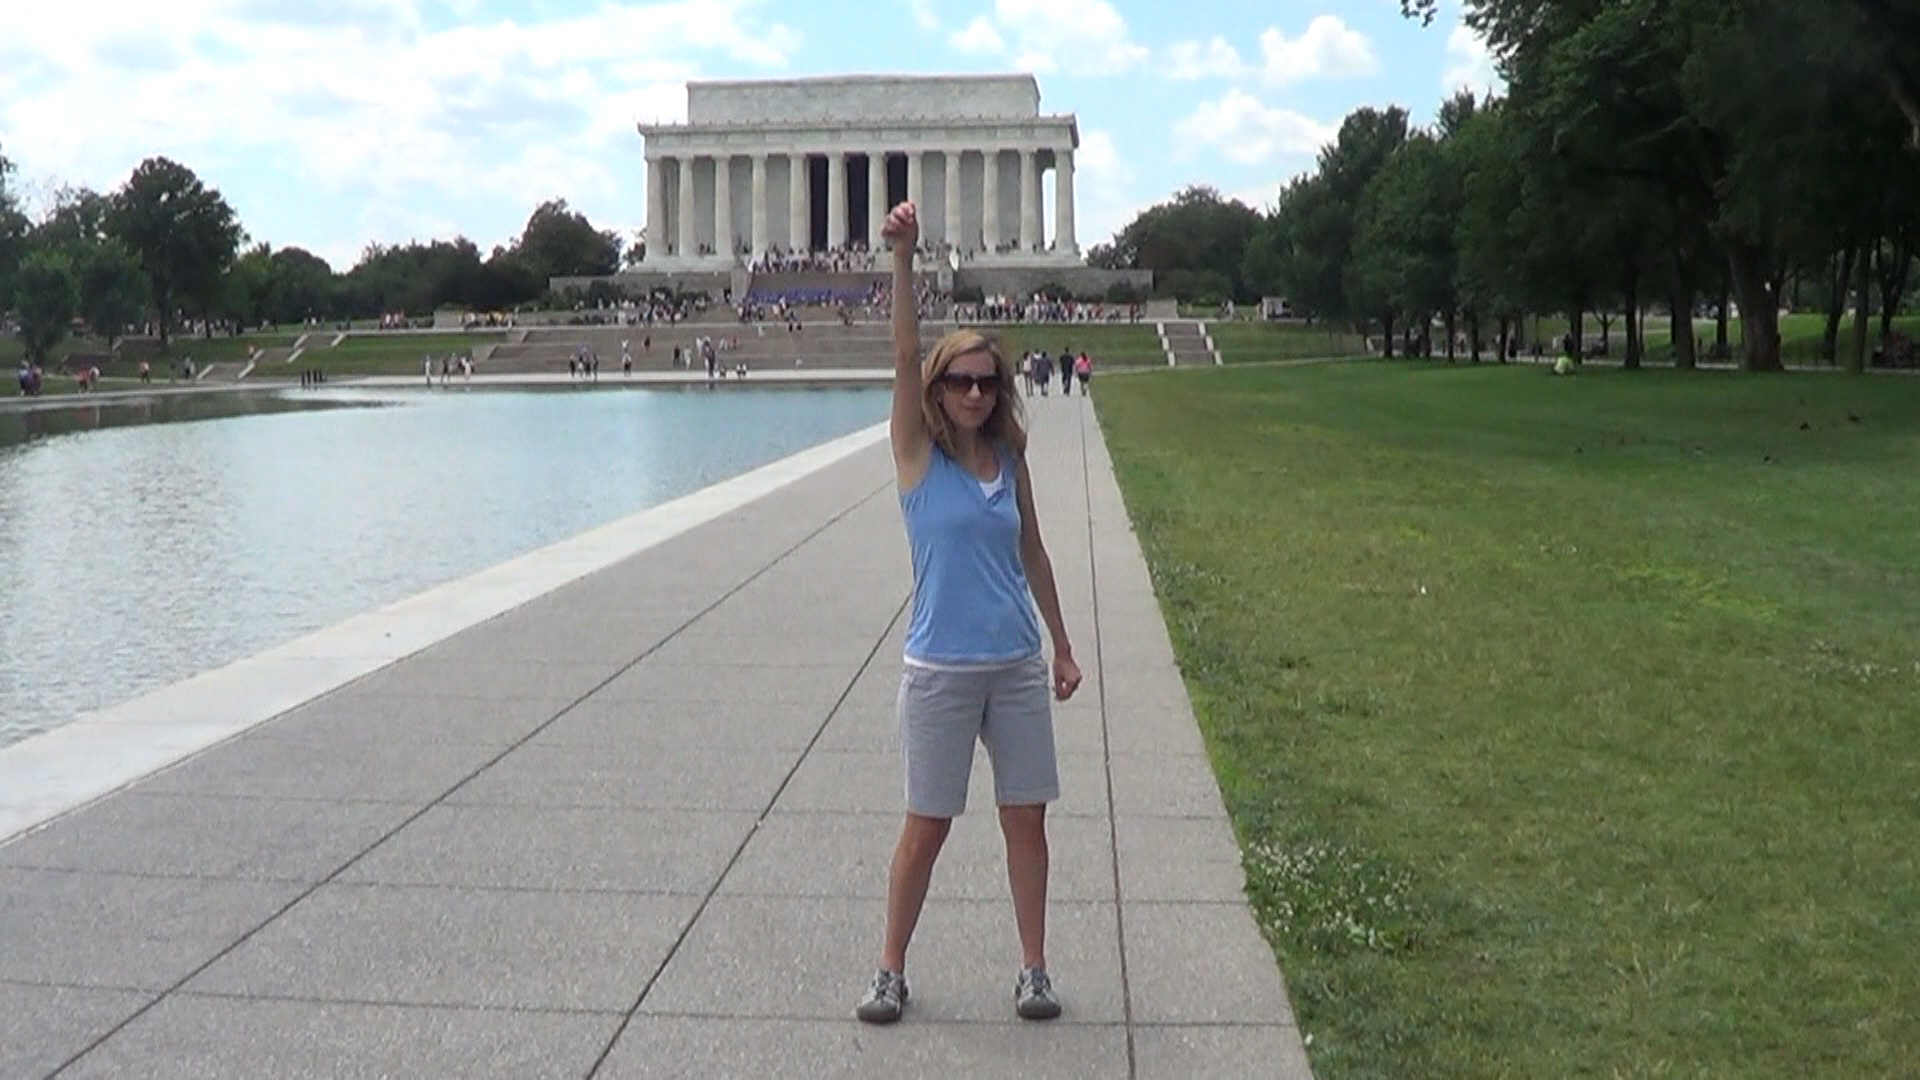 30 - National Mall Lincoln Memorial